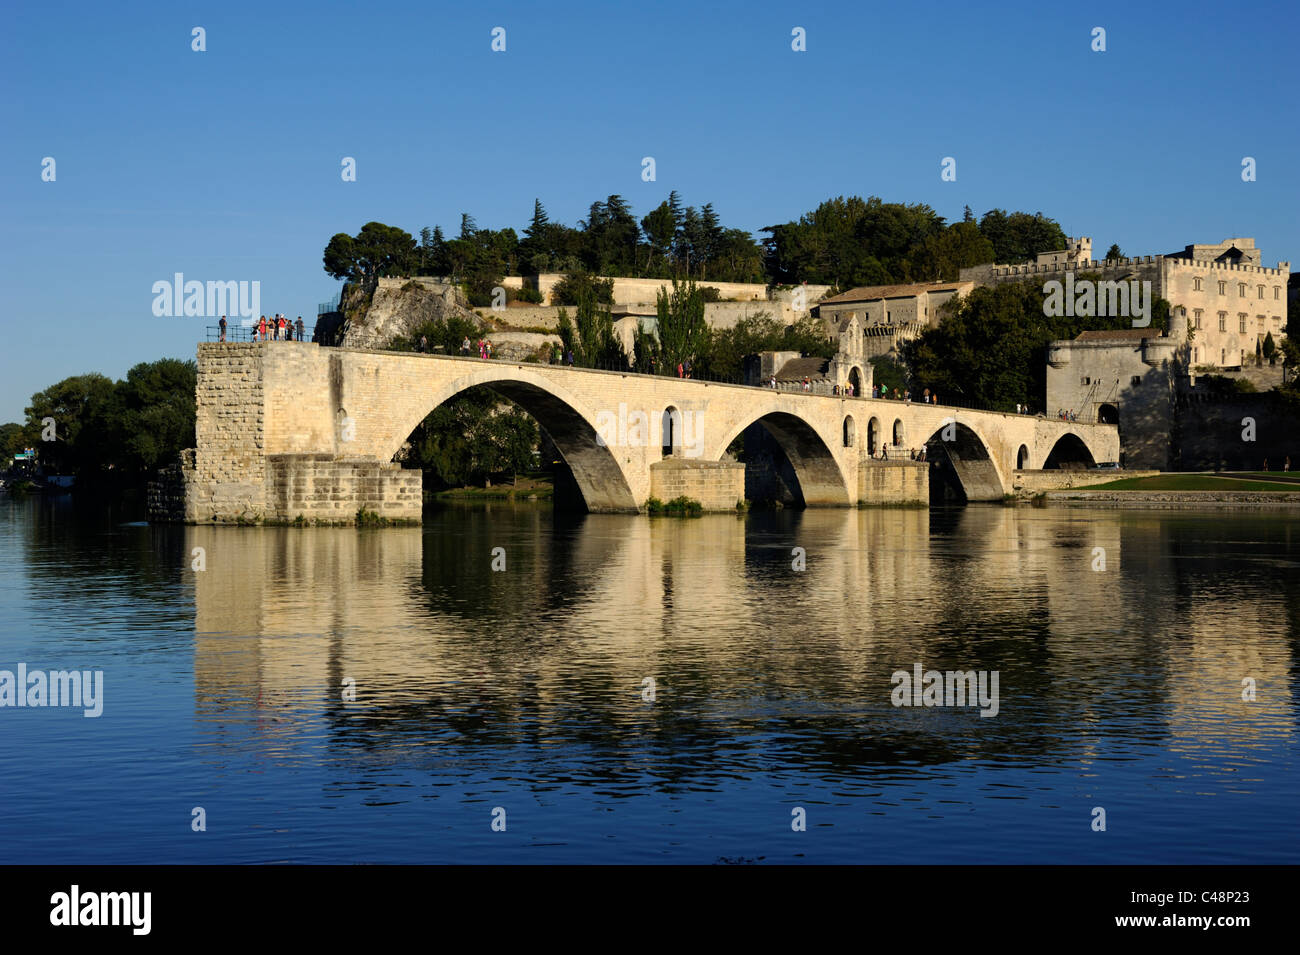 france, provence, avignon, rhone river, saint benezet bridge - Stock Image